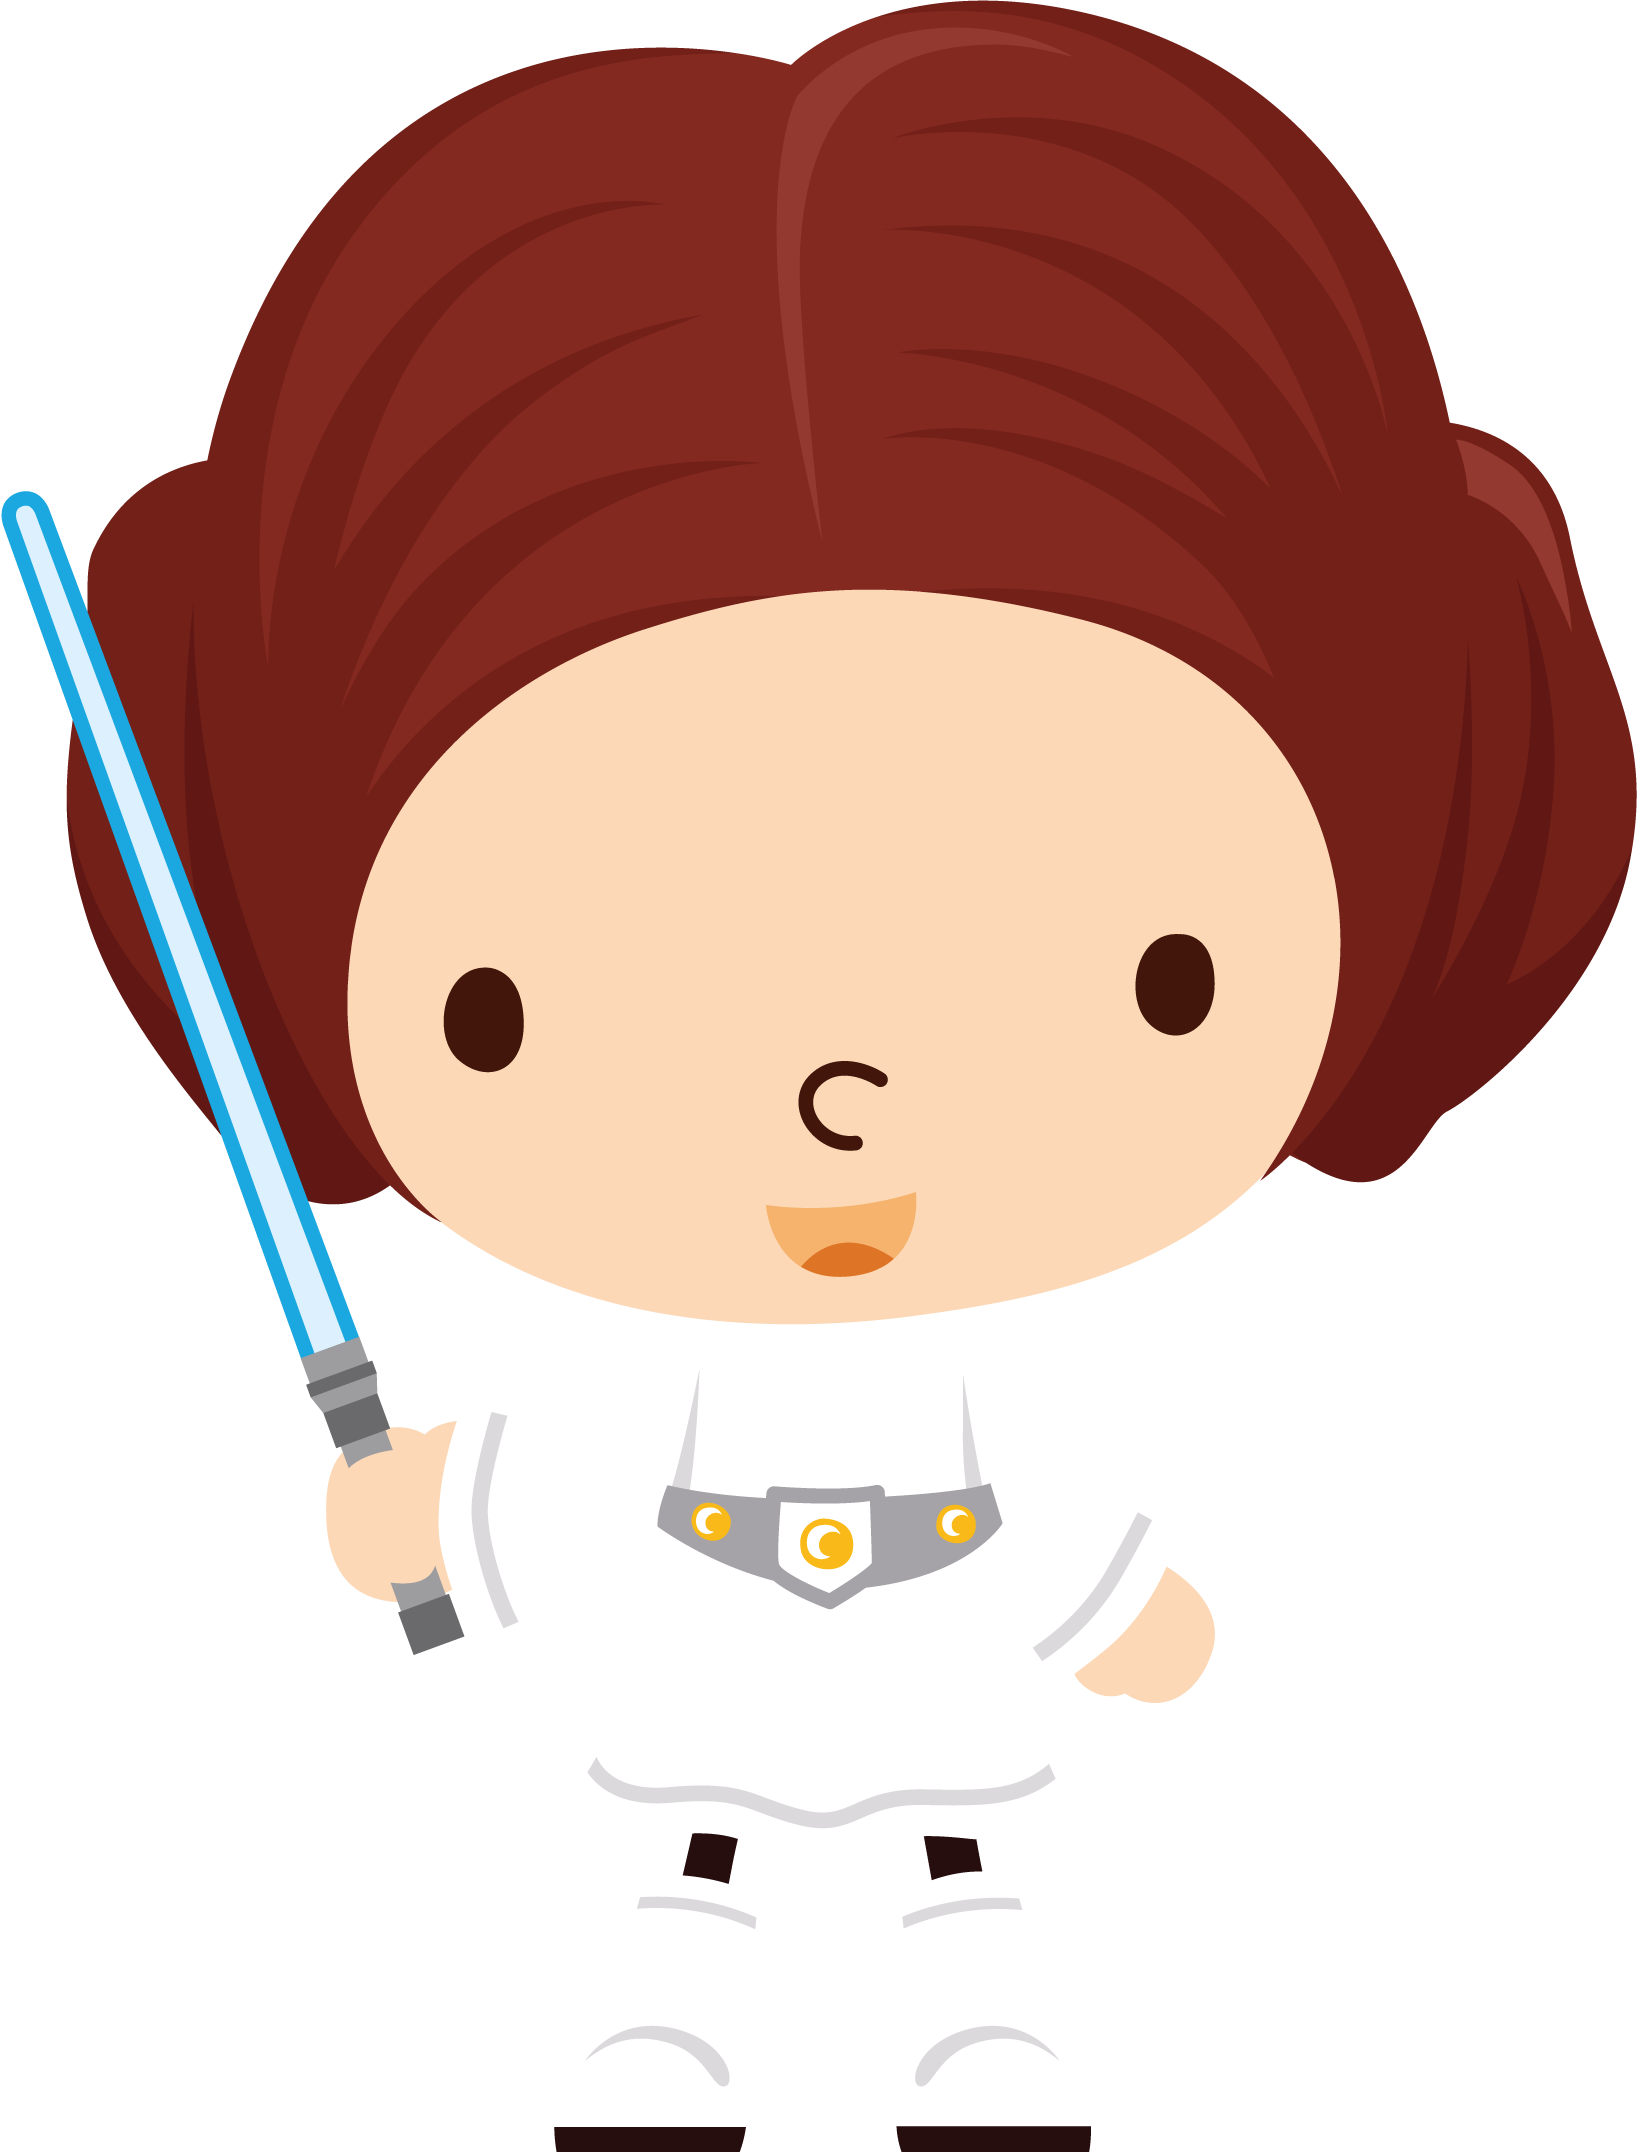 Star wars high resolution clipart clipart library stock orig14.deviantart.net 9790 f 2014 267 0 3 leia_by_chrispix326 ... clipart library stock